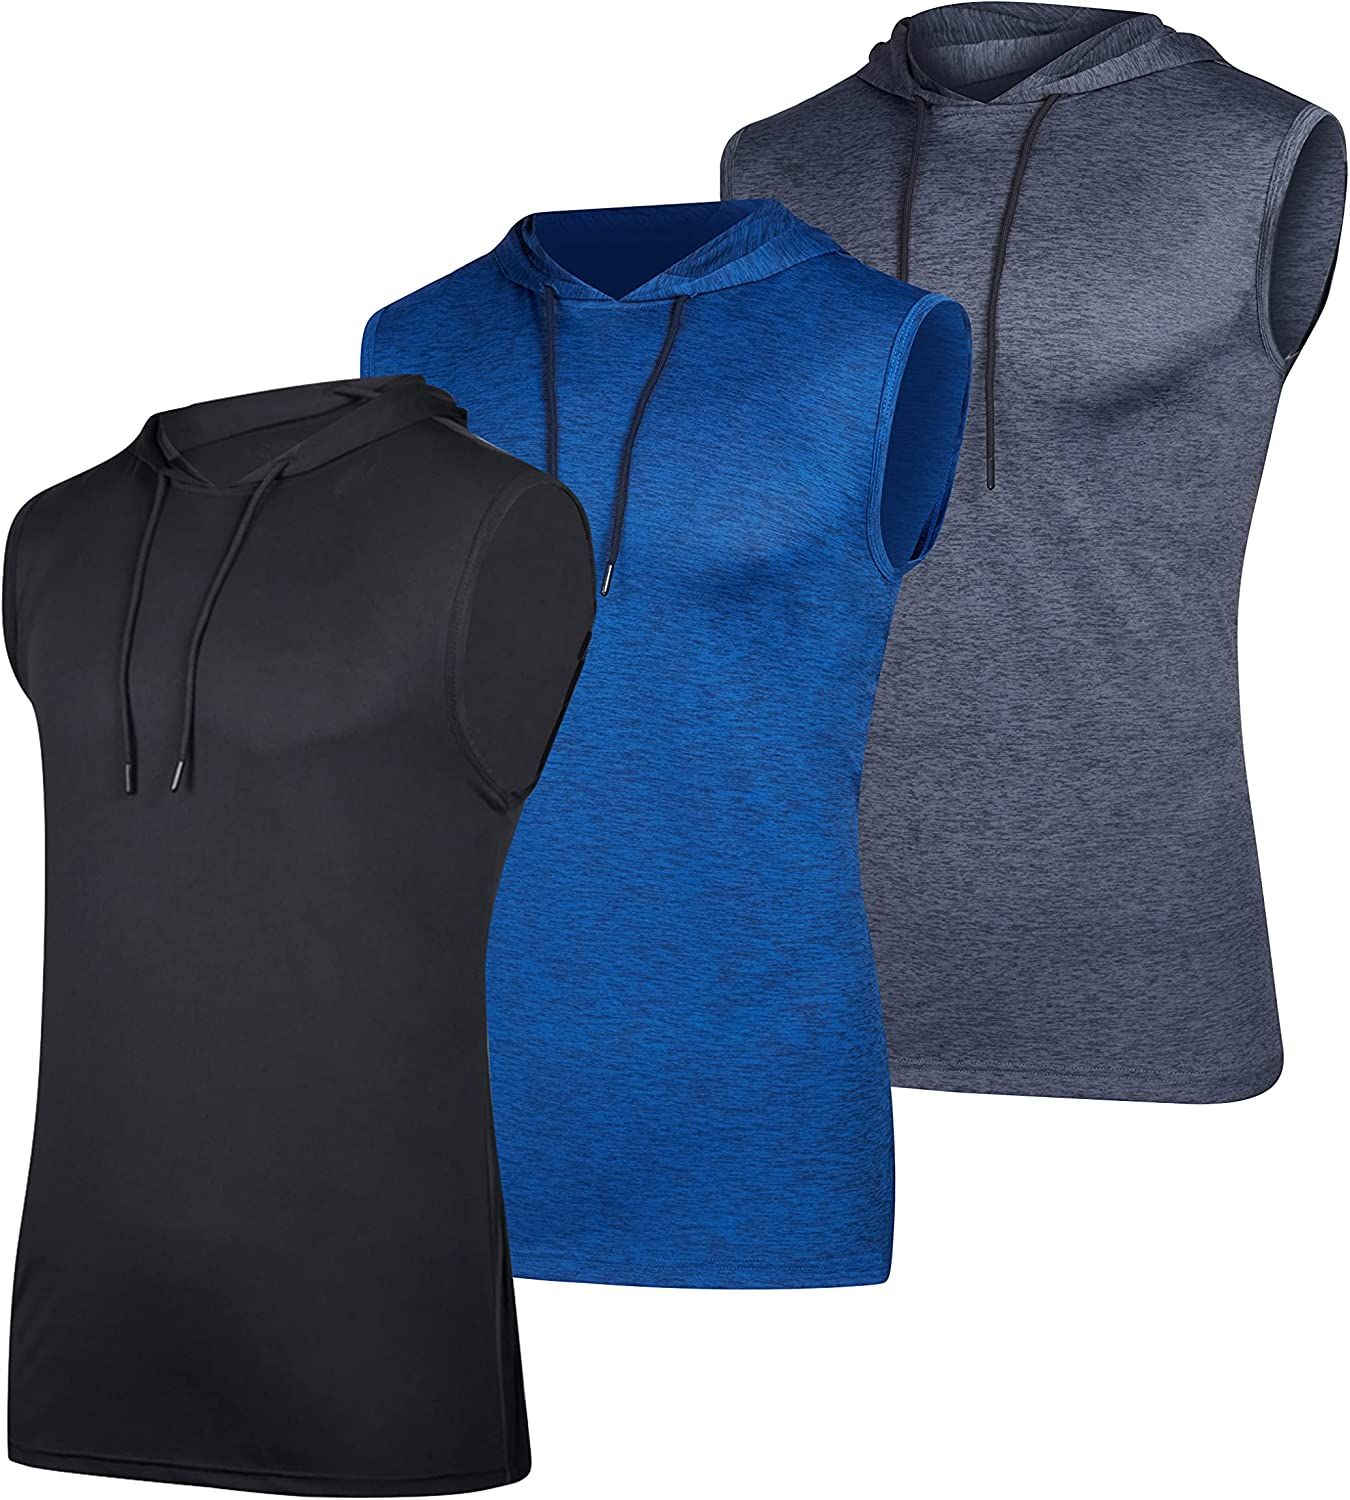 3 Pack: Selling rankings Men's Dry-Fit Active Hooded - Slee Workout El Paso Mall Tank Top